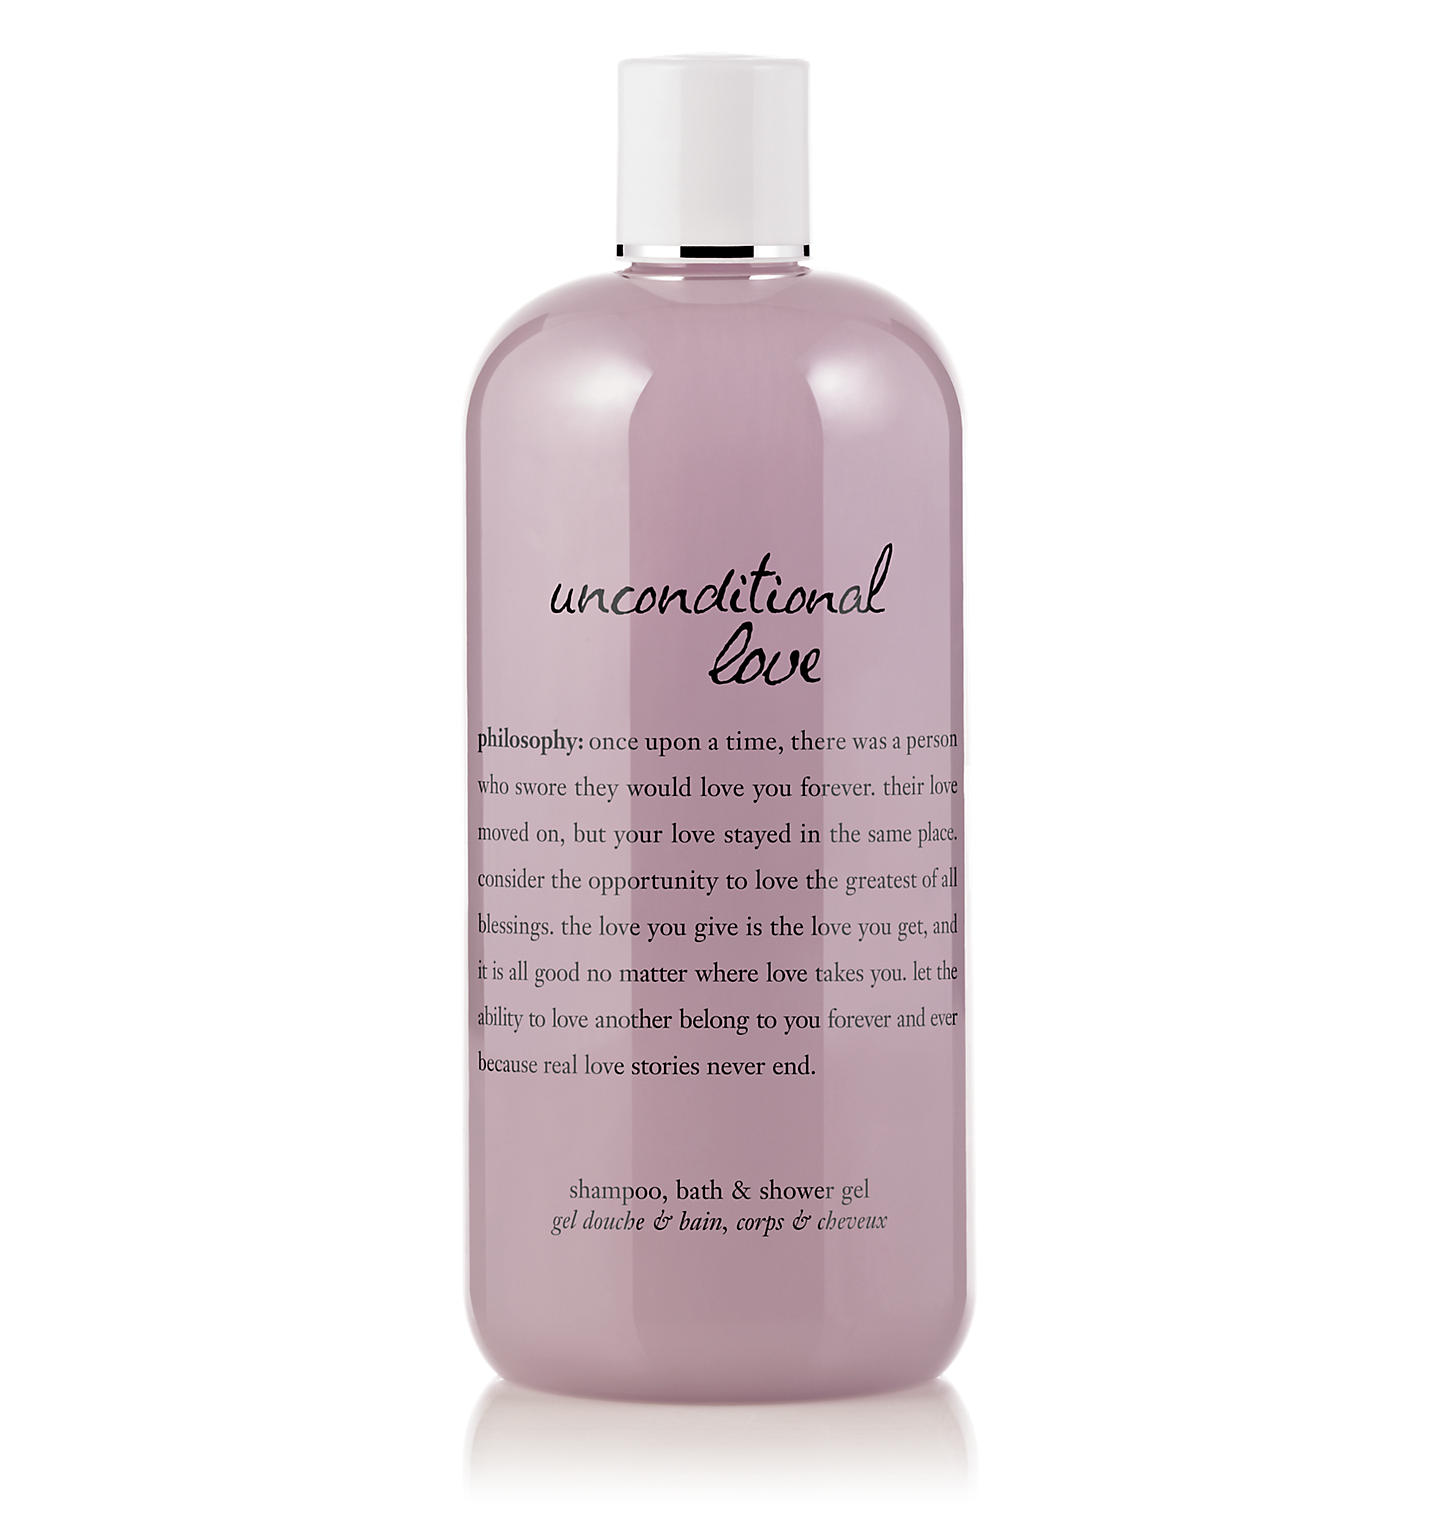 philosophy, unconditional love 16oz. shower gel